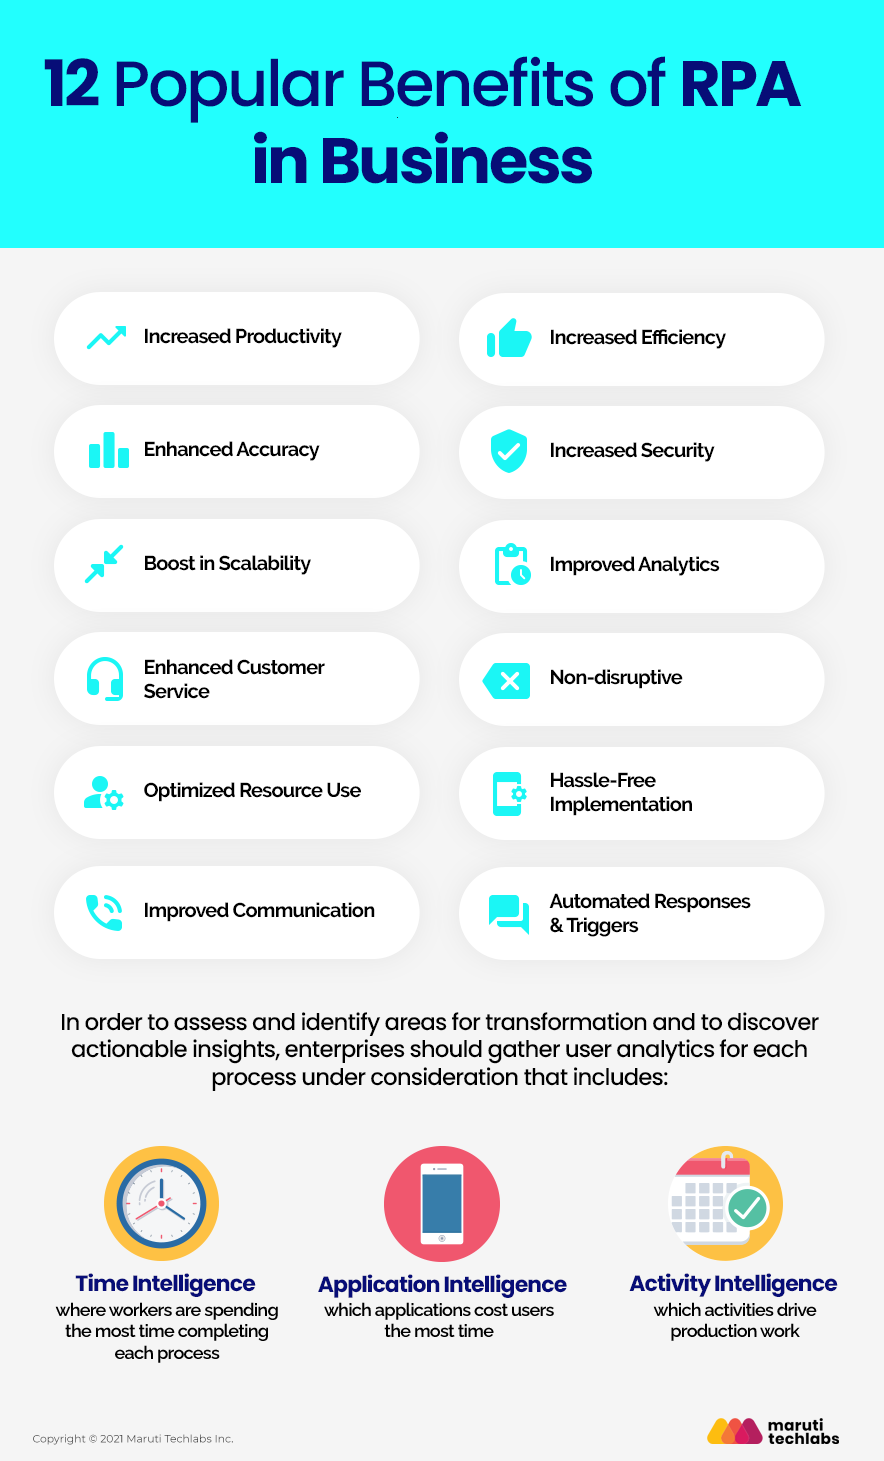 12 Popular Benefits and Applications of RPA in Business (1)